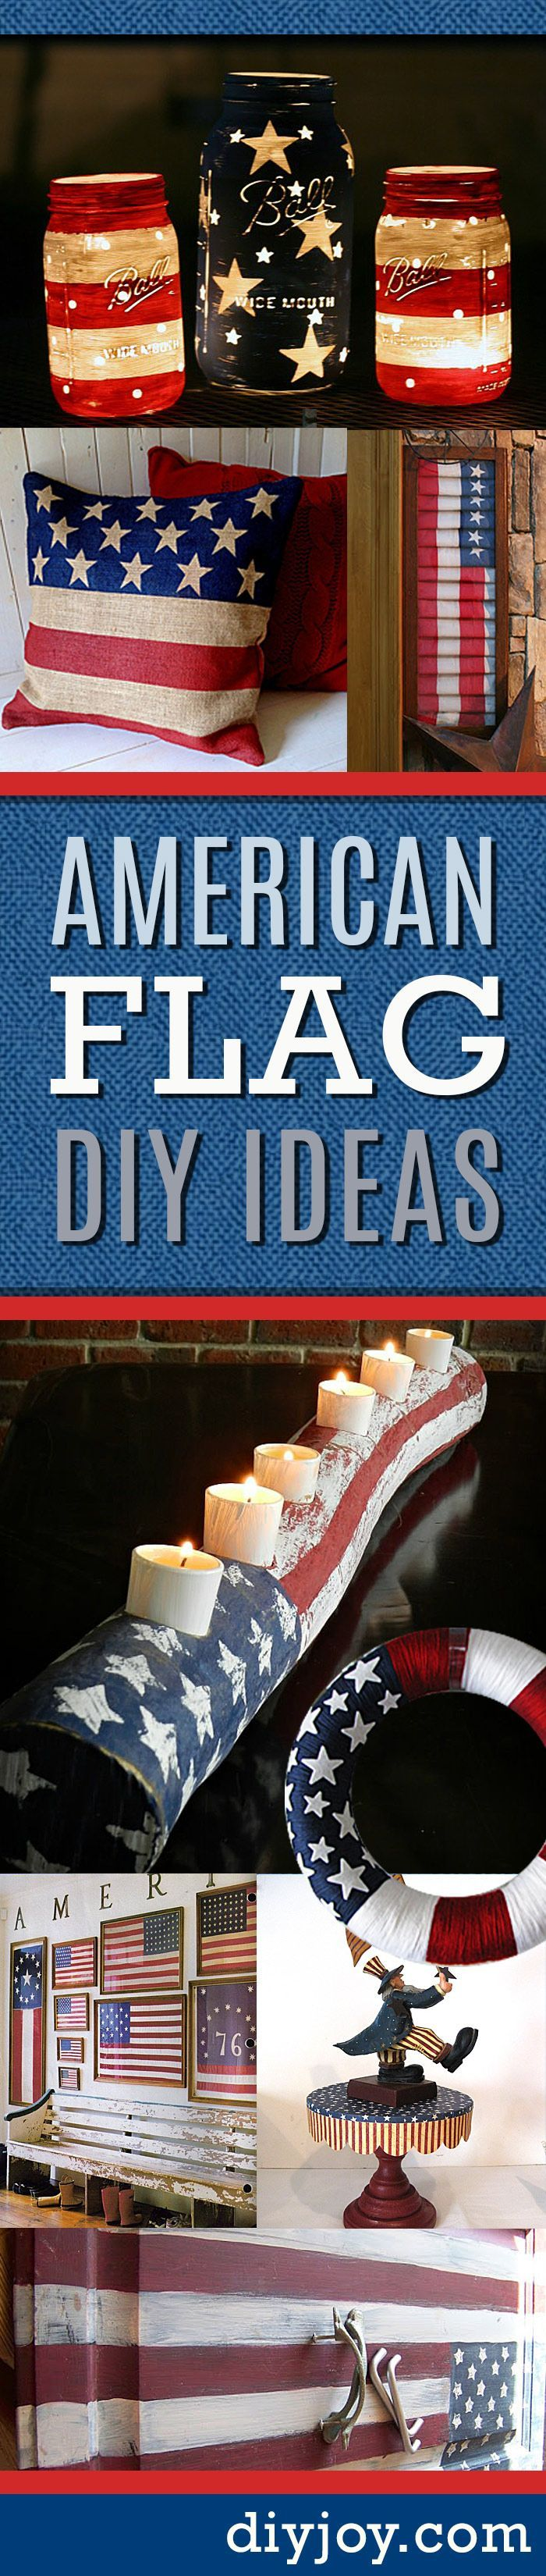 American Flag Inspired DIY Projects To Show Your Patriotic Side | Home Decor and Crafts with Flags